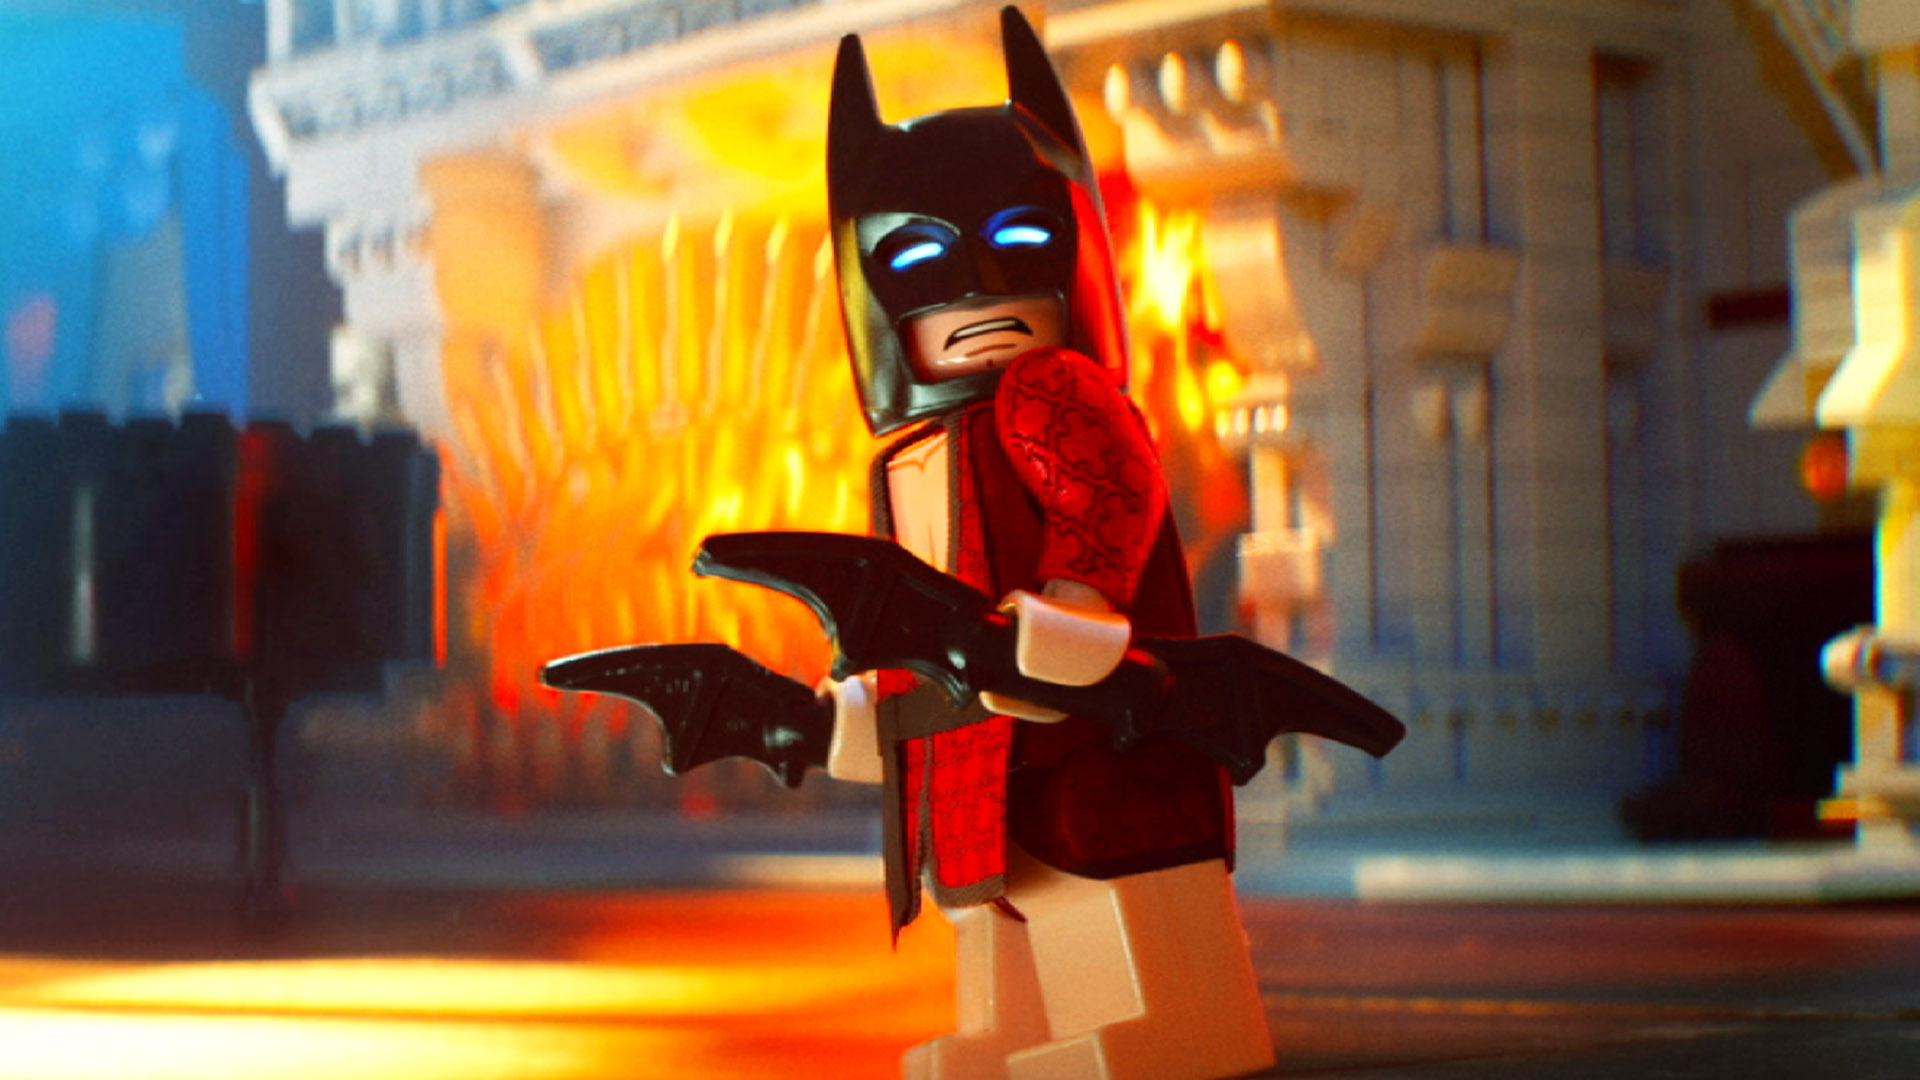 Unlock Iphones Secret Lego Batman Movie Easter Egg likewise Lego Batman Siri Easter Egg in addition Lego batman 2 3a dc super heroes 17684318 further Siri Will Now Be e The Bat puter If You Say These Magic Words 6470741 additionally Join Blocks Magazines Bat Build Contest And Get A Chance To Win Some Of The Coolest Tlbm Sets. on puter lego batman